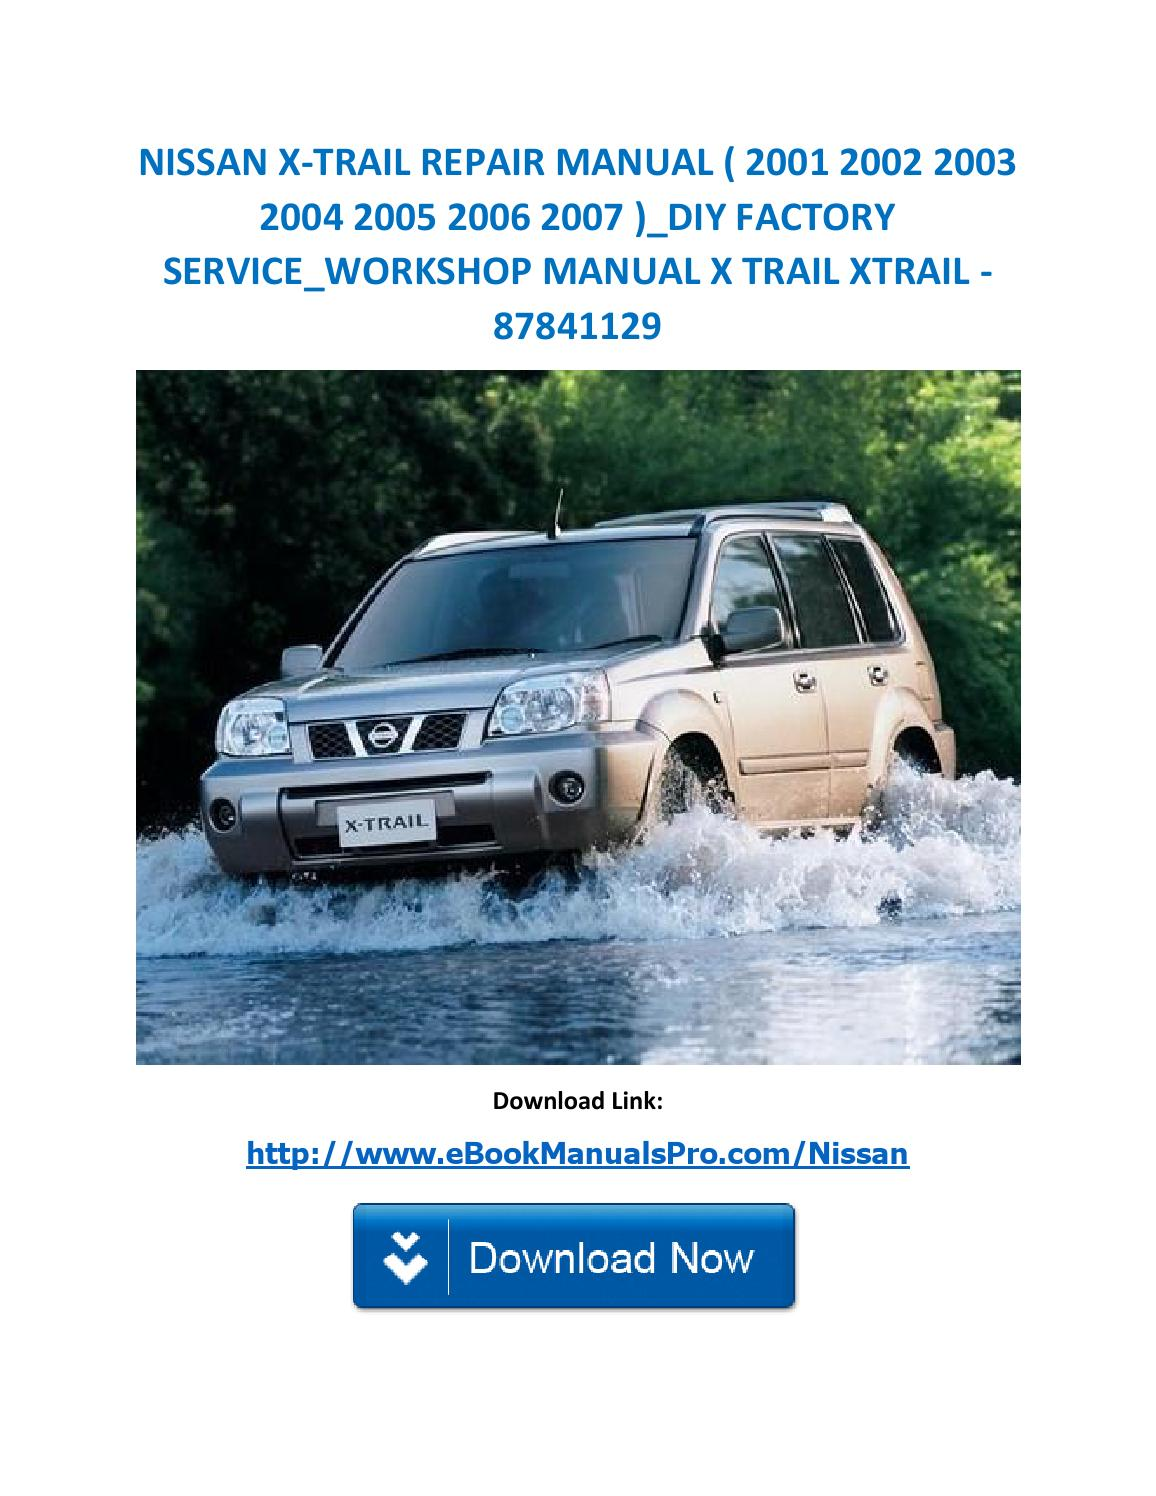 hight resolution of nissan x trail repair manual 2001 2002 2003 2004 2005 2006 2007 diy factory service workshop man by servicemanualsdownloads issuu